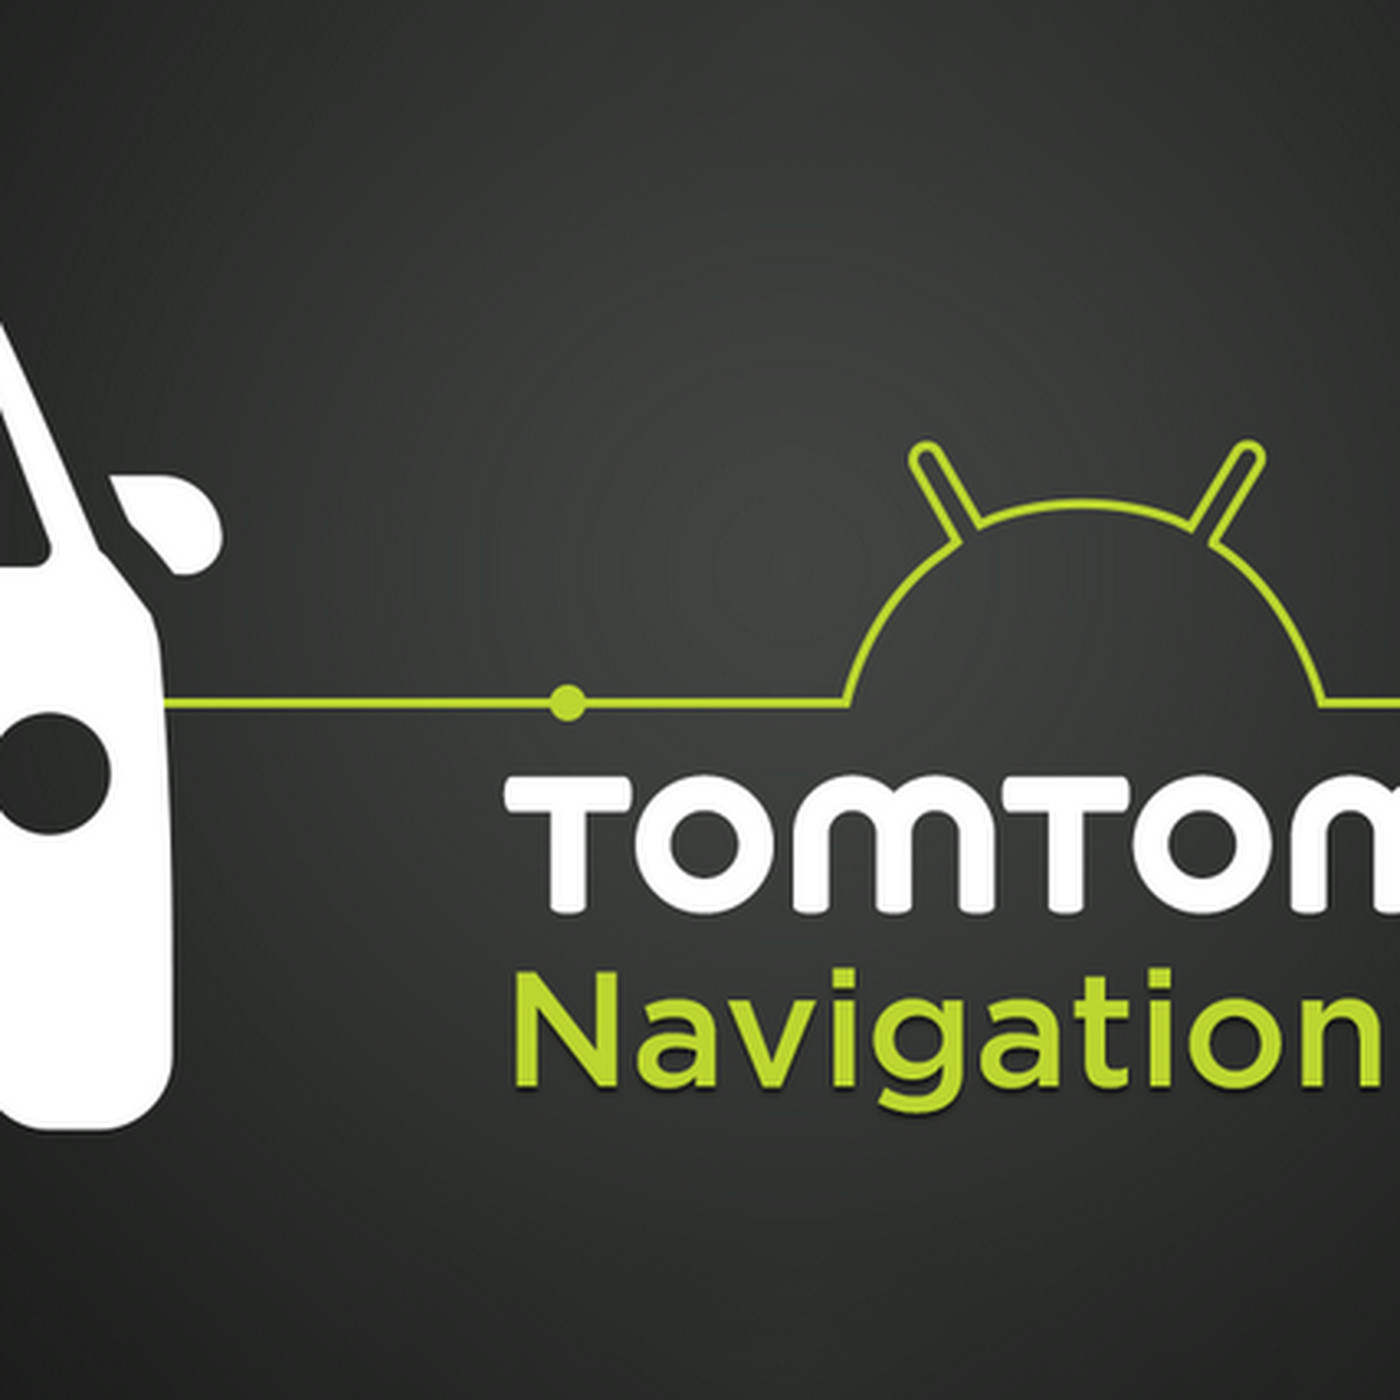 TomTom navigation finally arrives on Android, but lacks